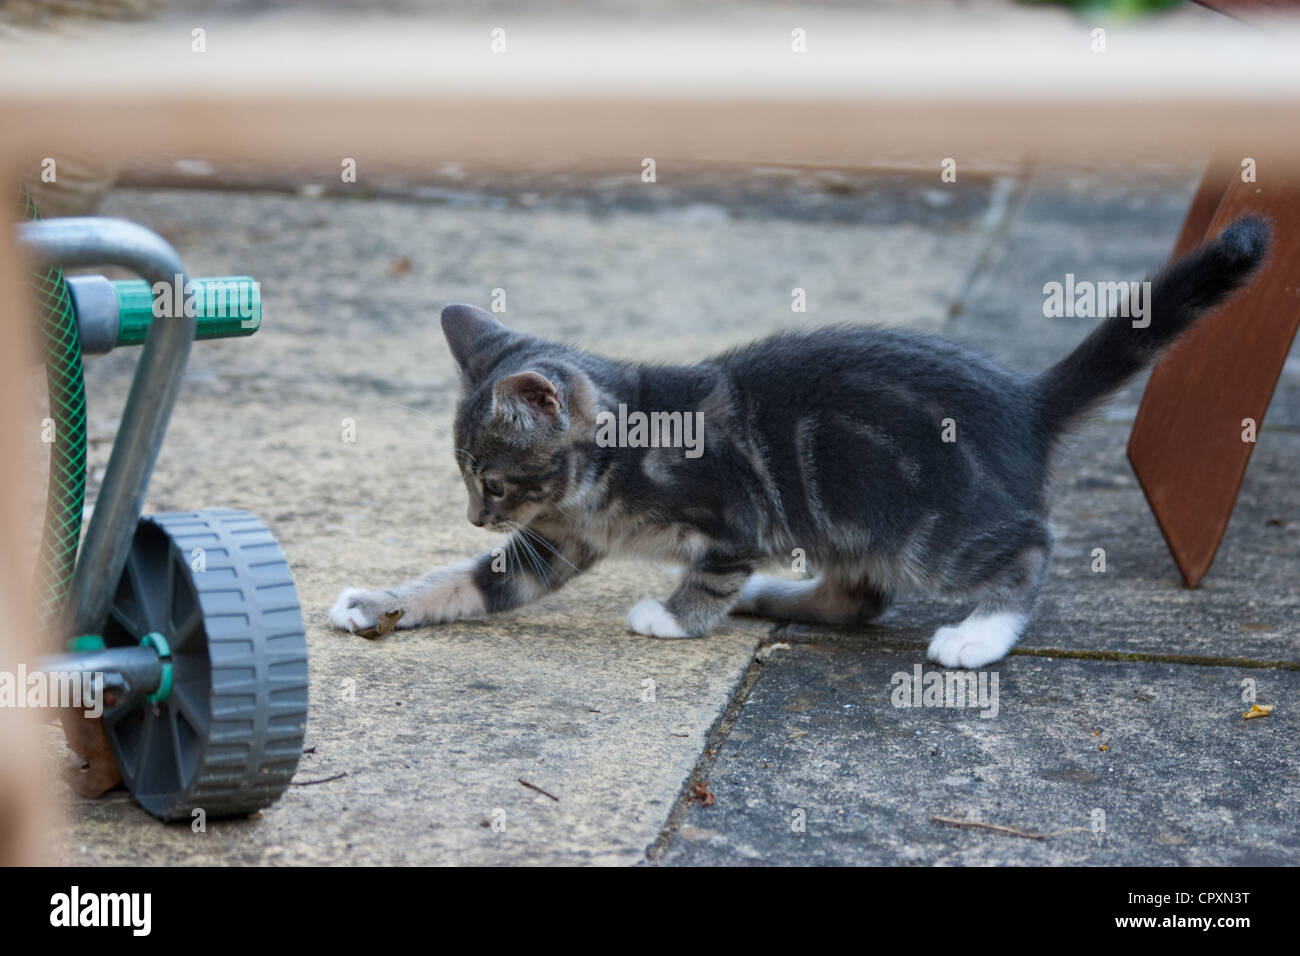 A domestic kitten pouncing on a leaf in a paved garden area - Stock Image